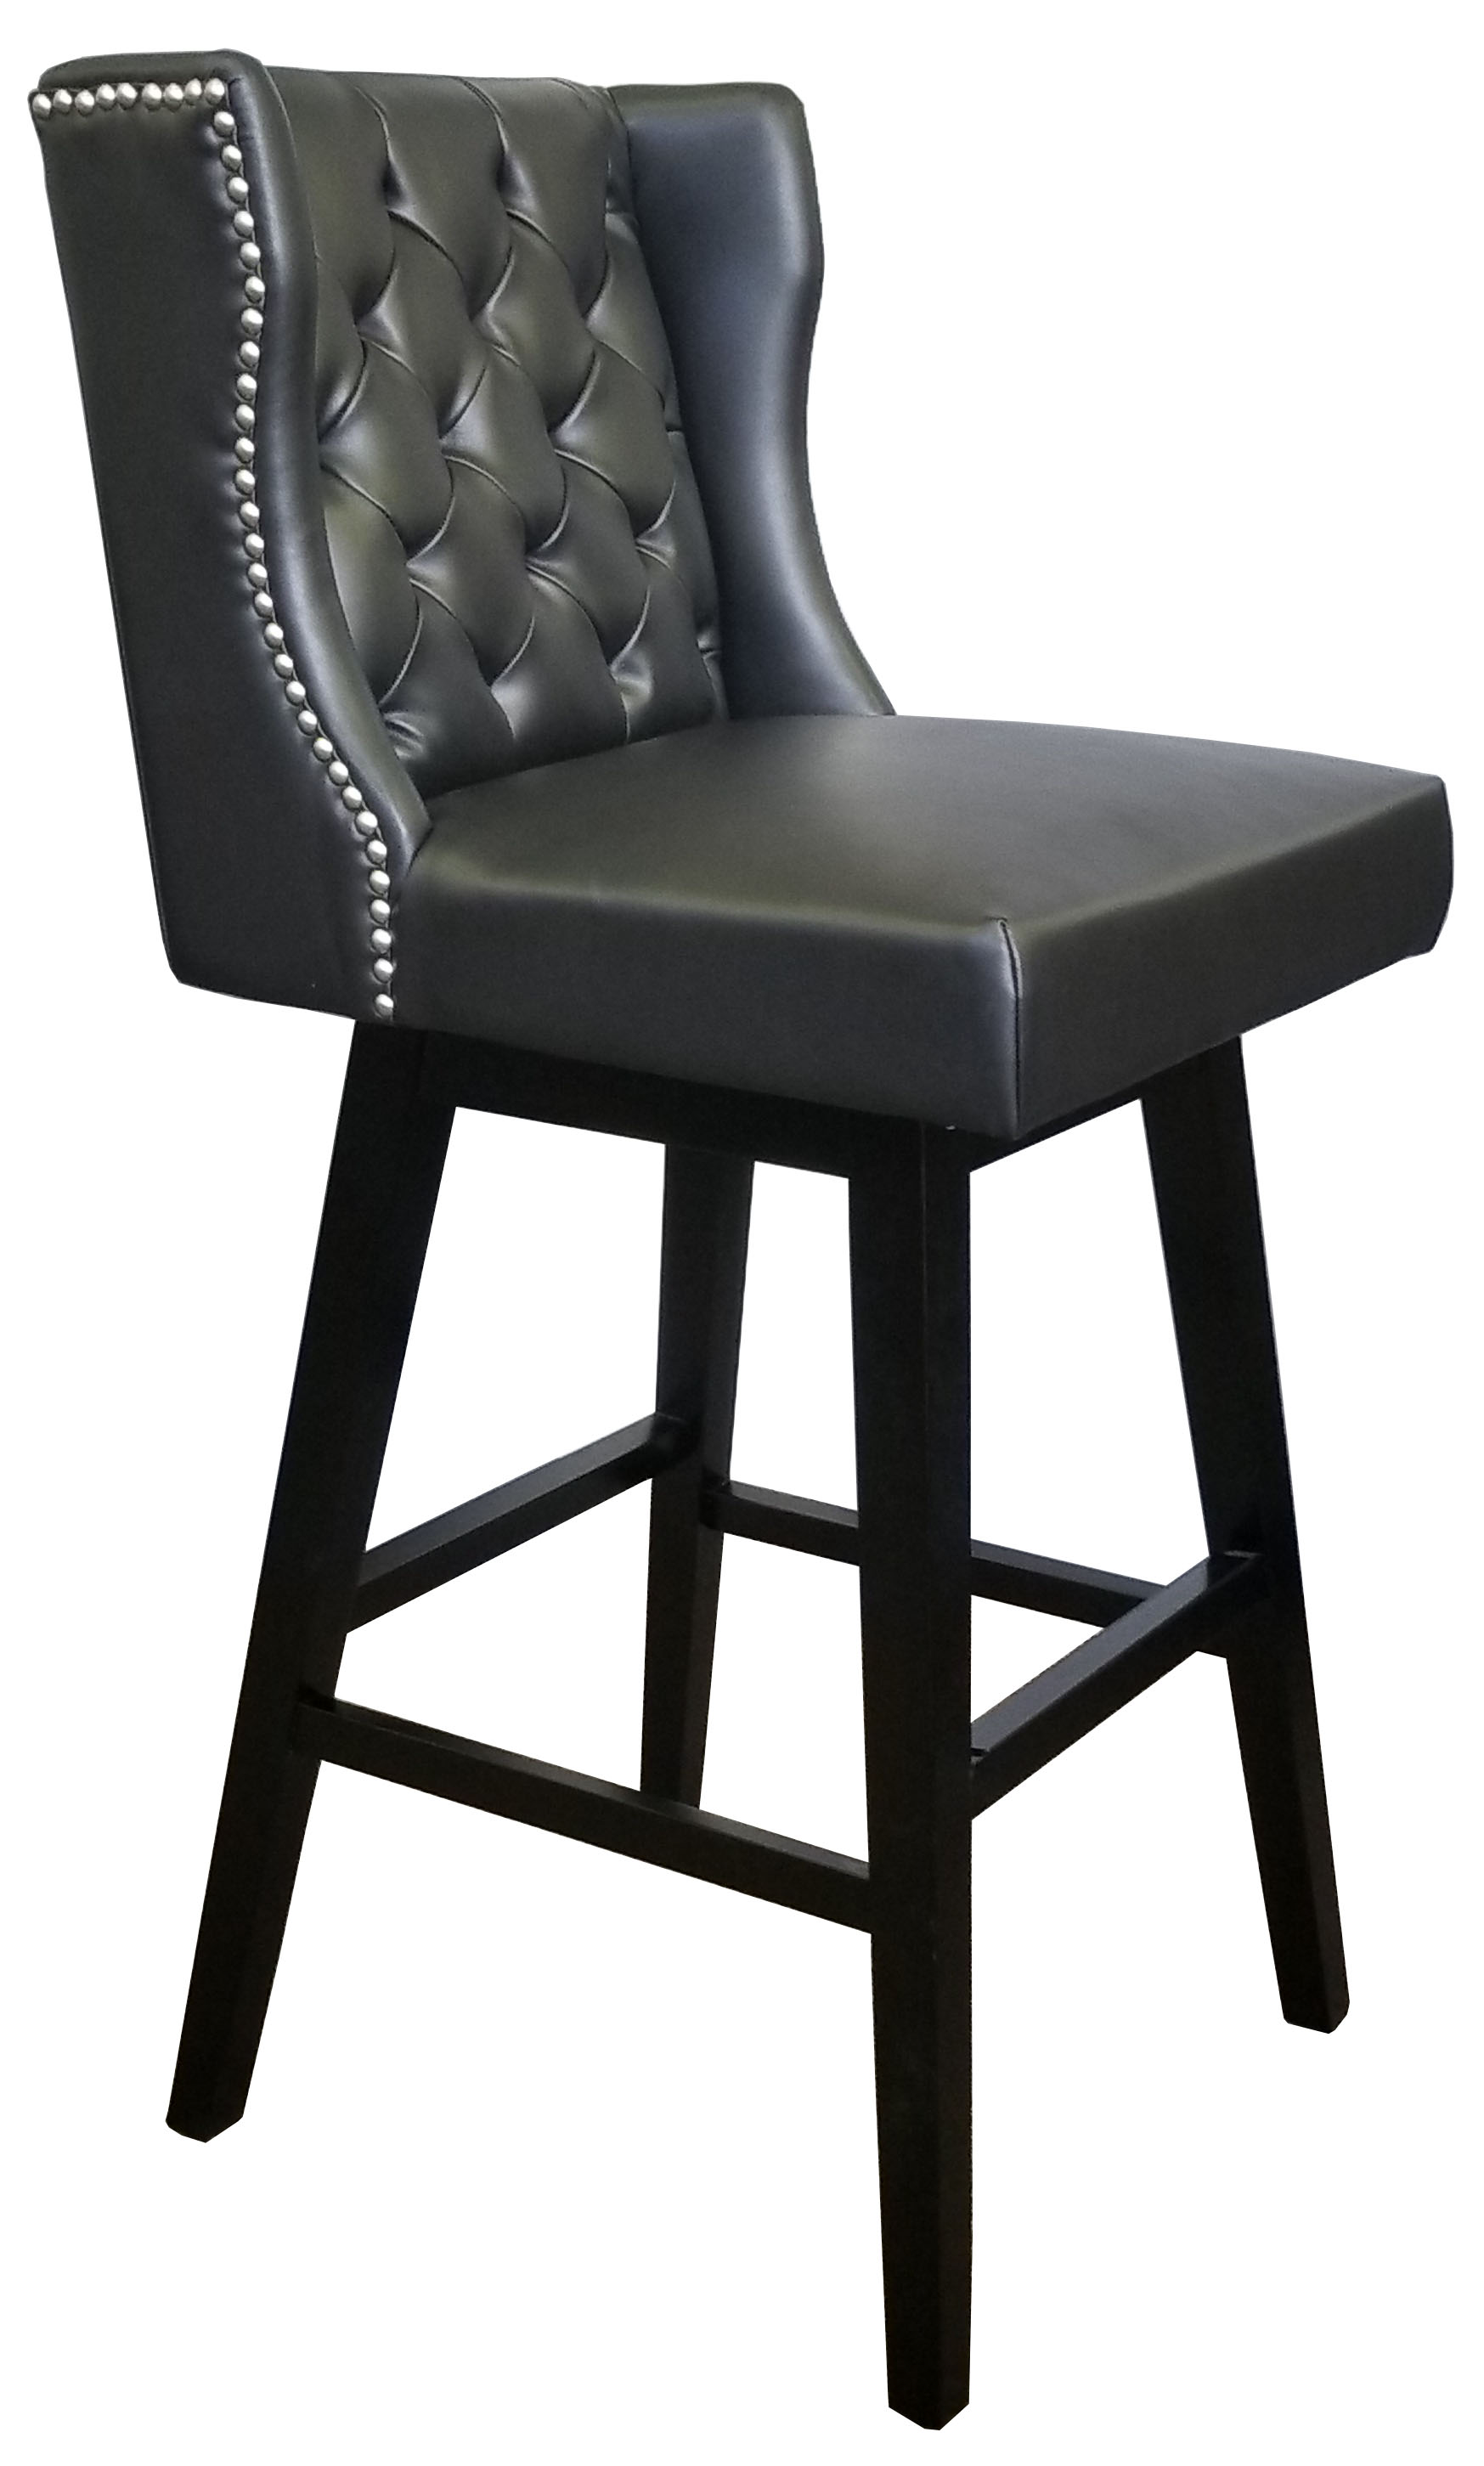 More Clearance Restaurant Swivel Bar Stool In Black